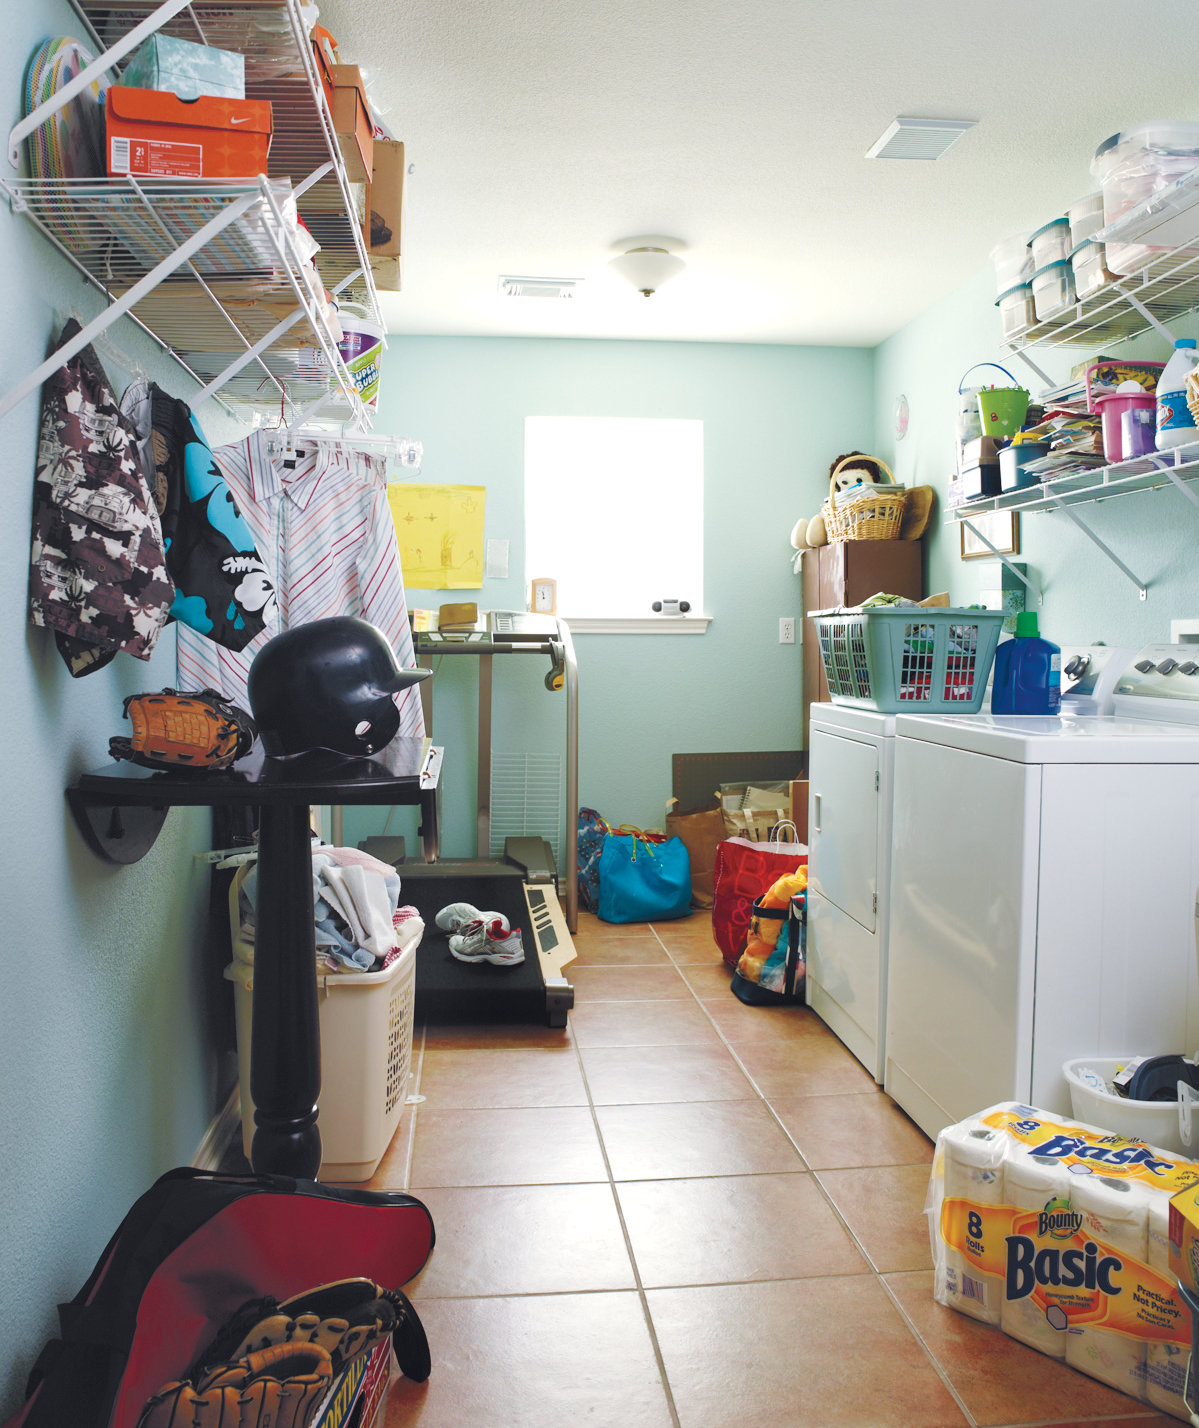 Messy Room: 16 Before-and-After Room Makeovers